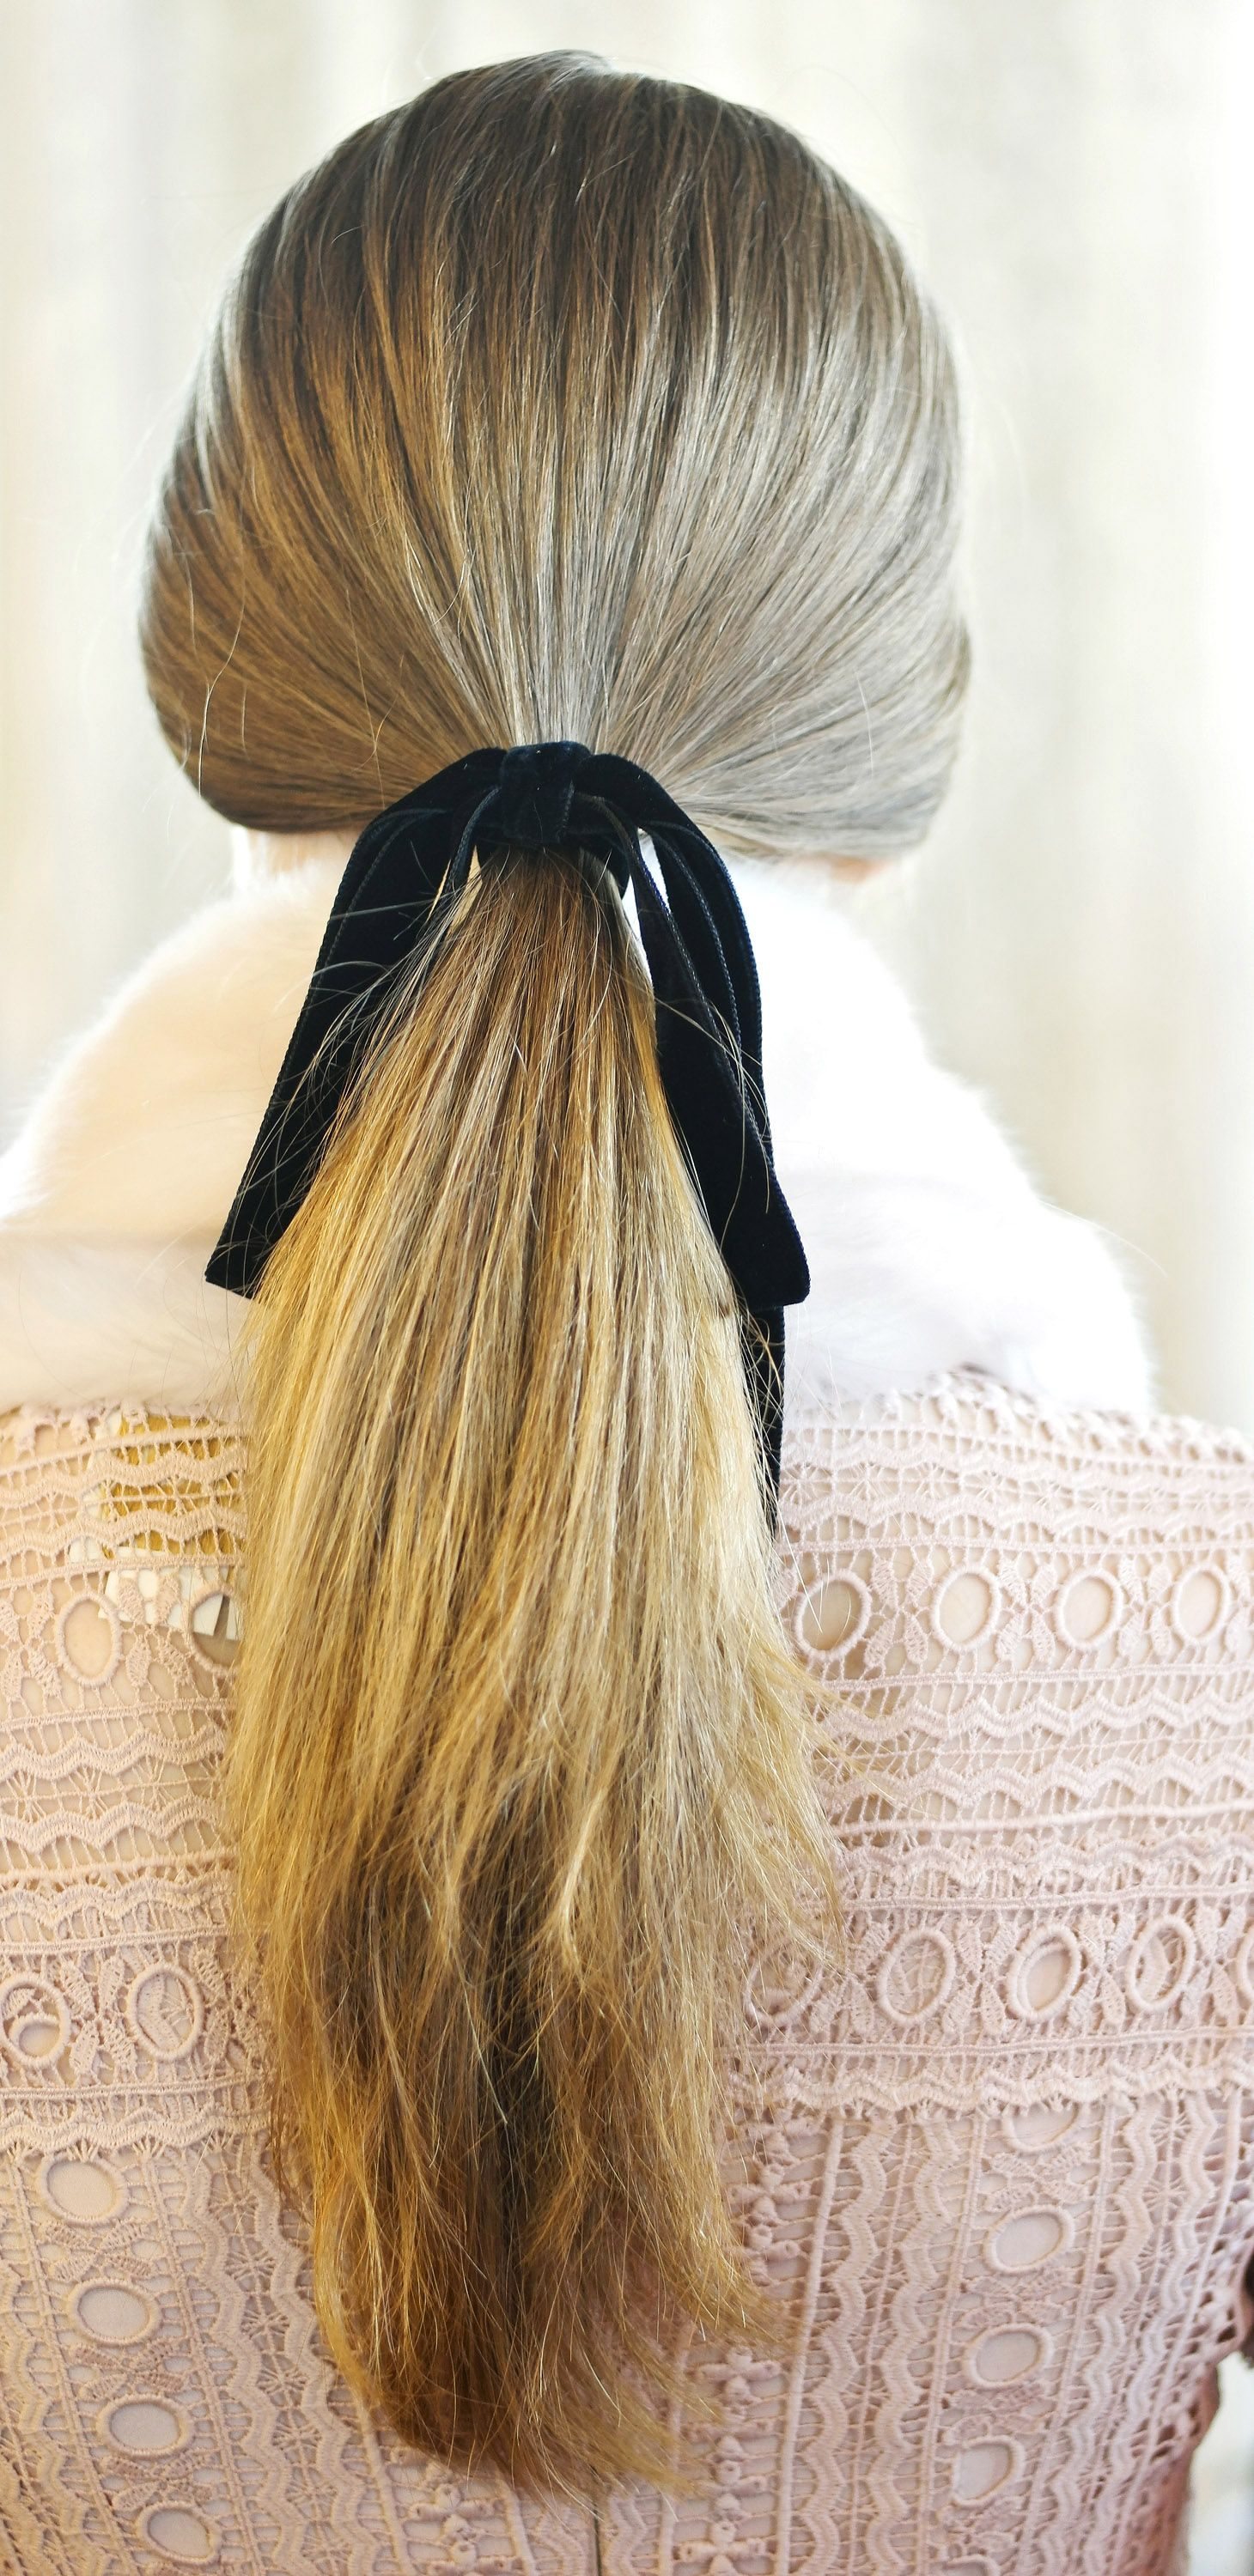 Best Hair Trends For Fall 2016 Fall 2016 Hair Trends From The Runways